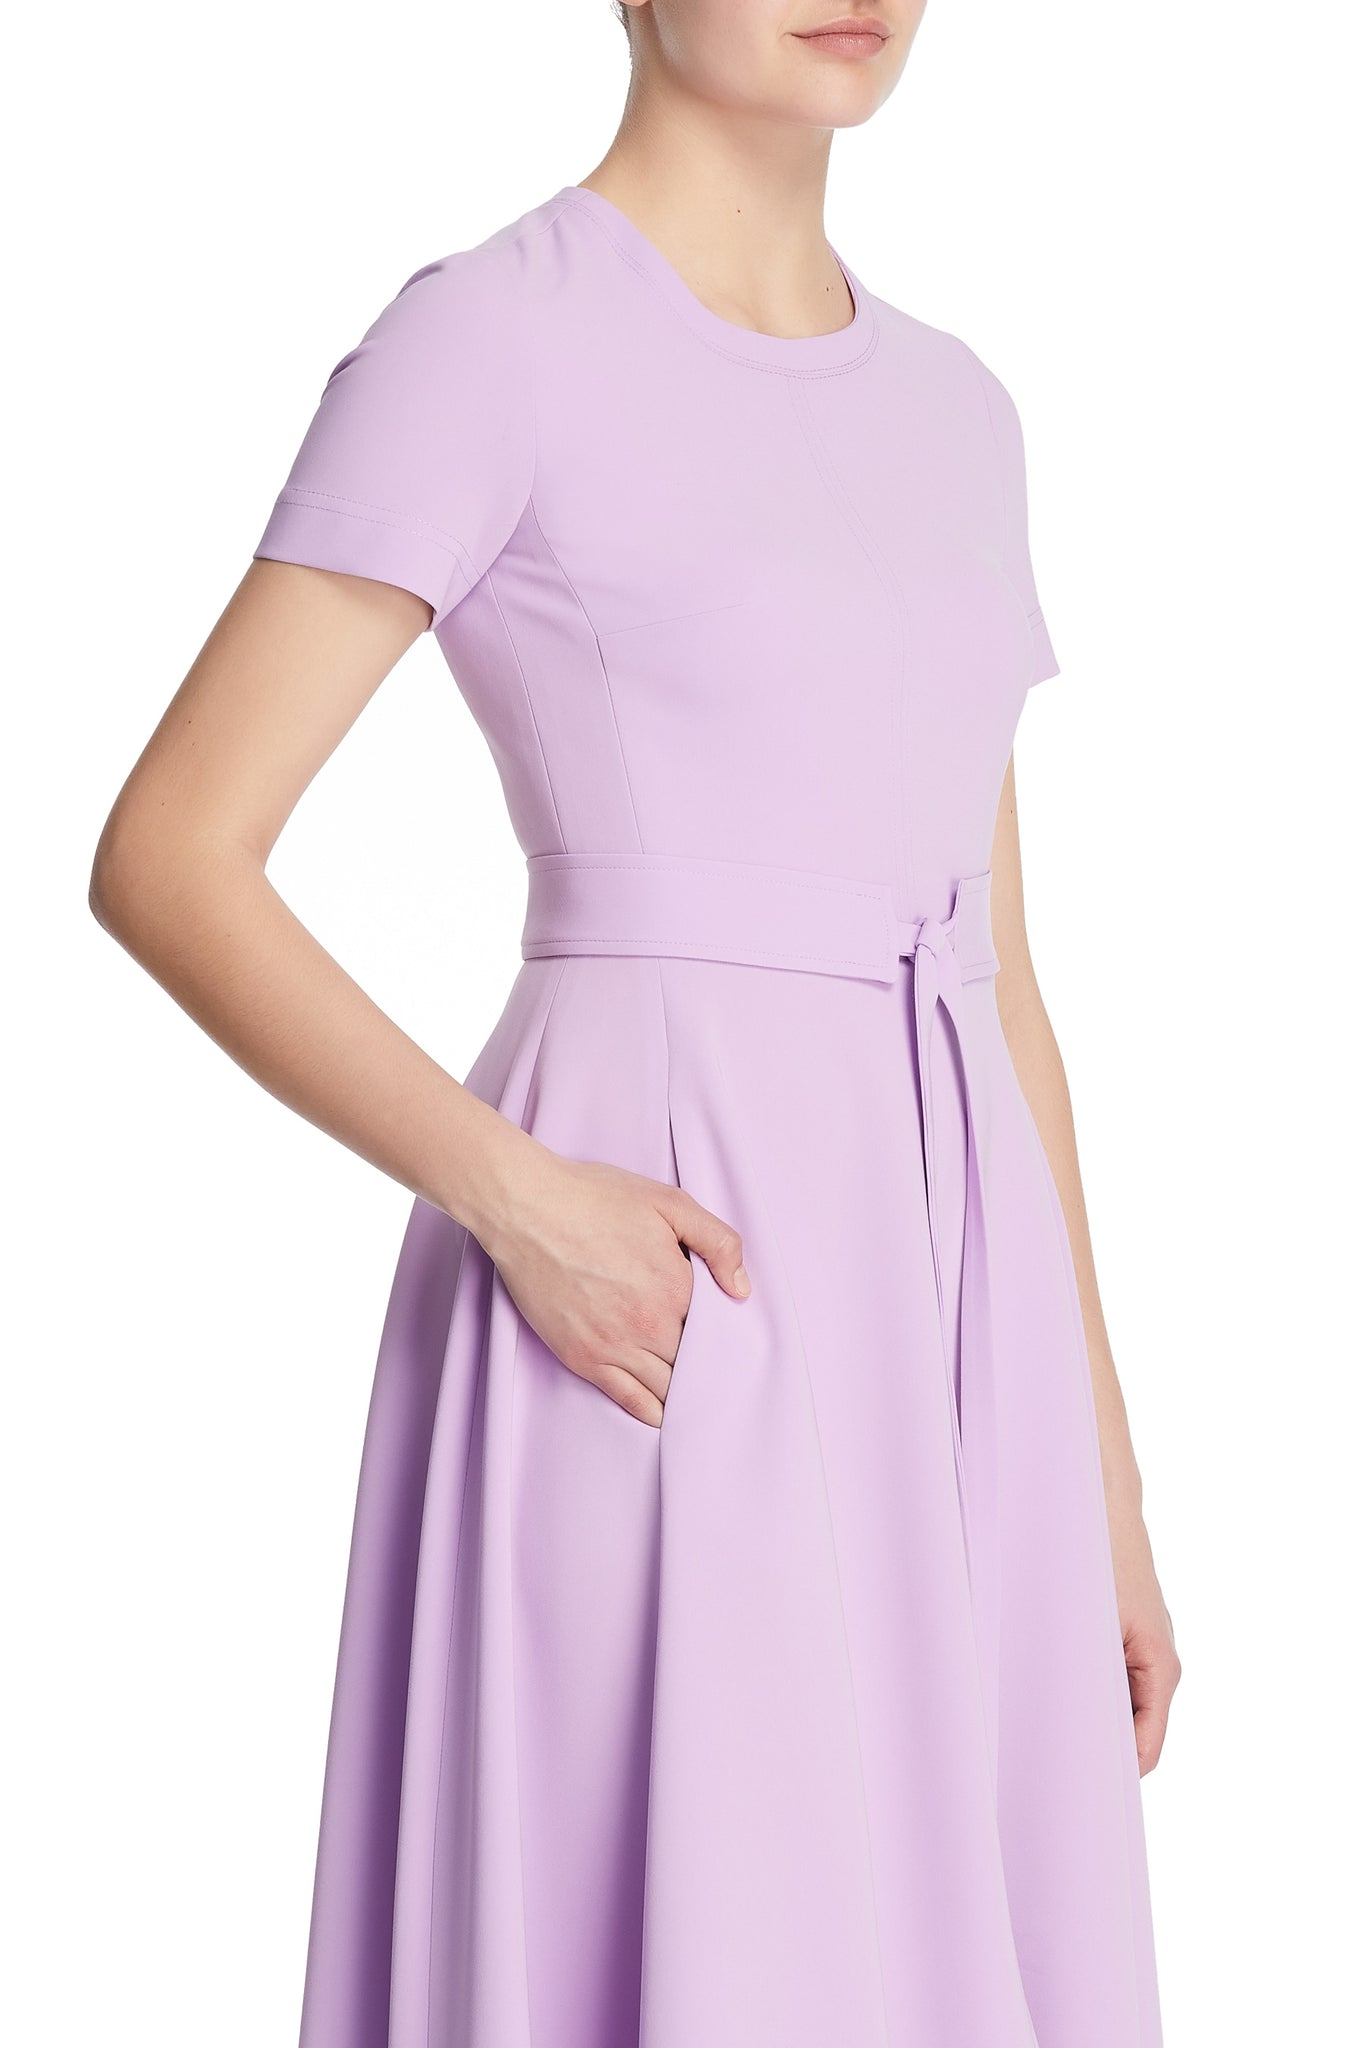 Mallorie Dress | Robe Mallorie